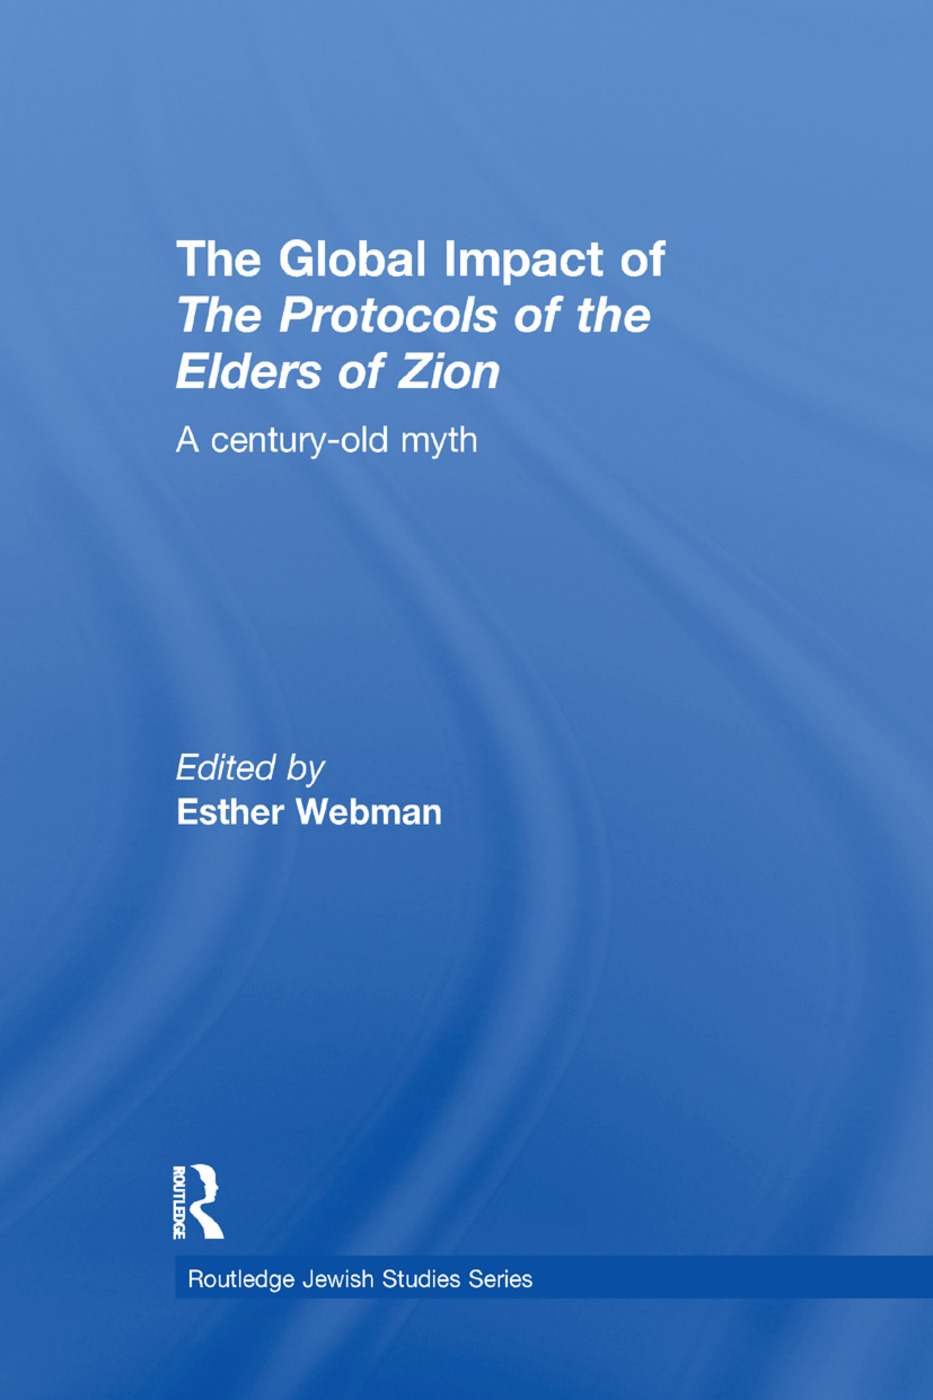 The Global Impact of the Protocols of the Elders of Zion: A Century-Old Myth book cover